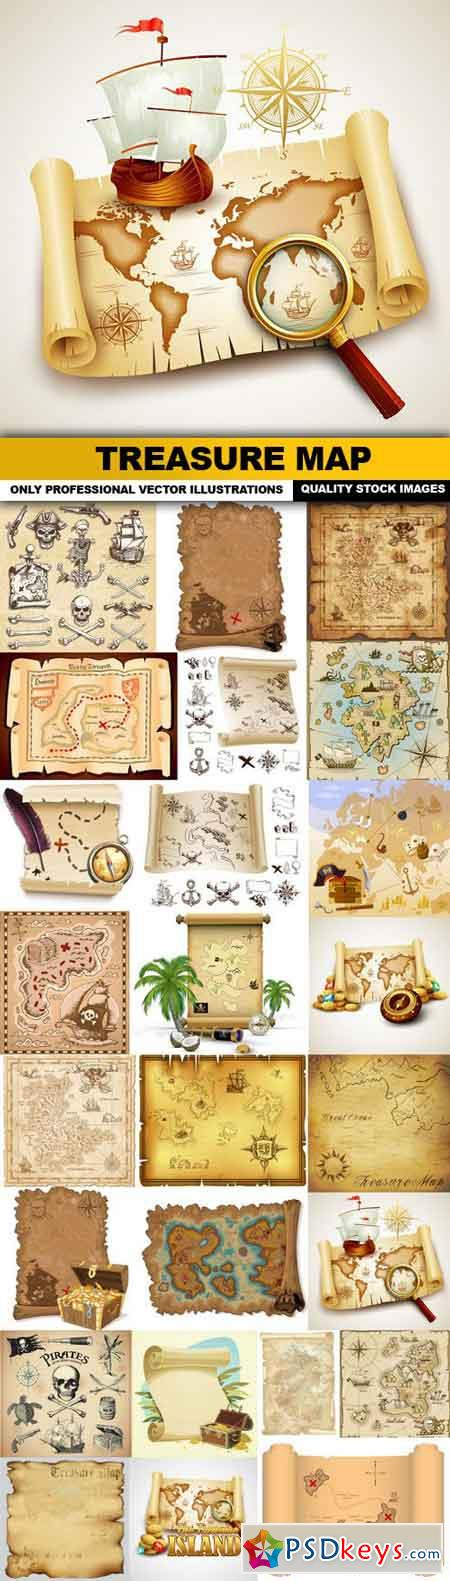 Treasure Map - 25 Vector